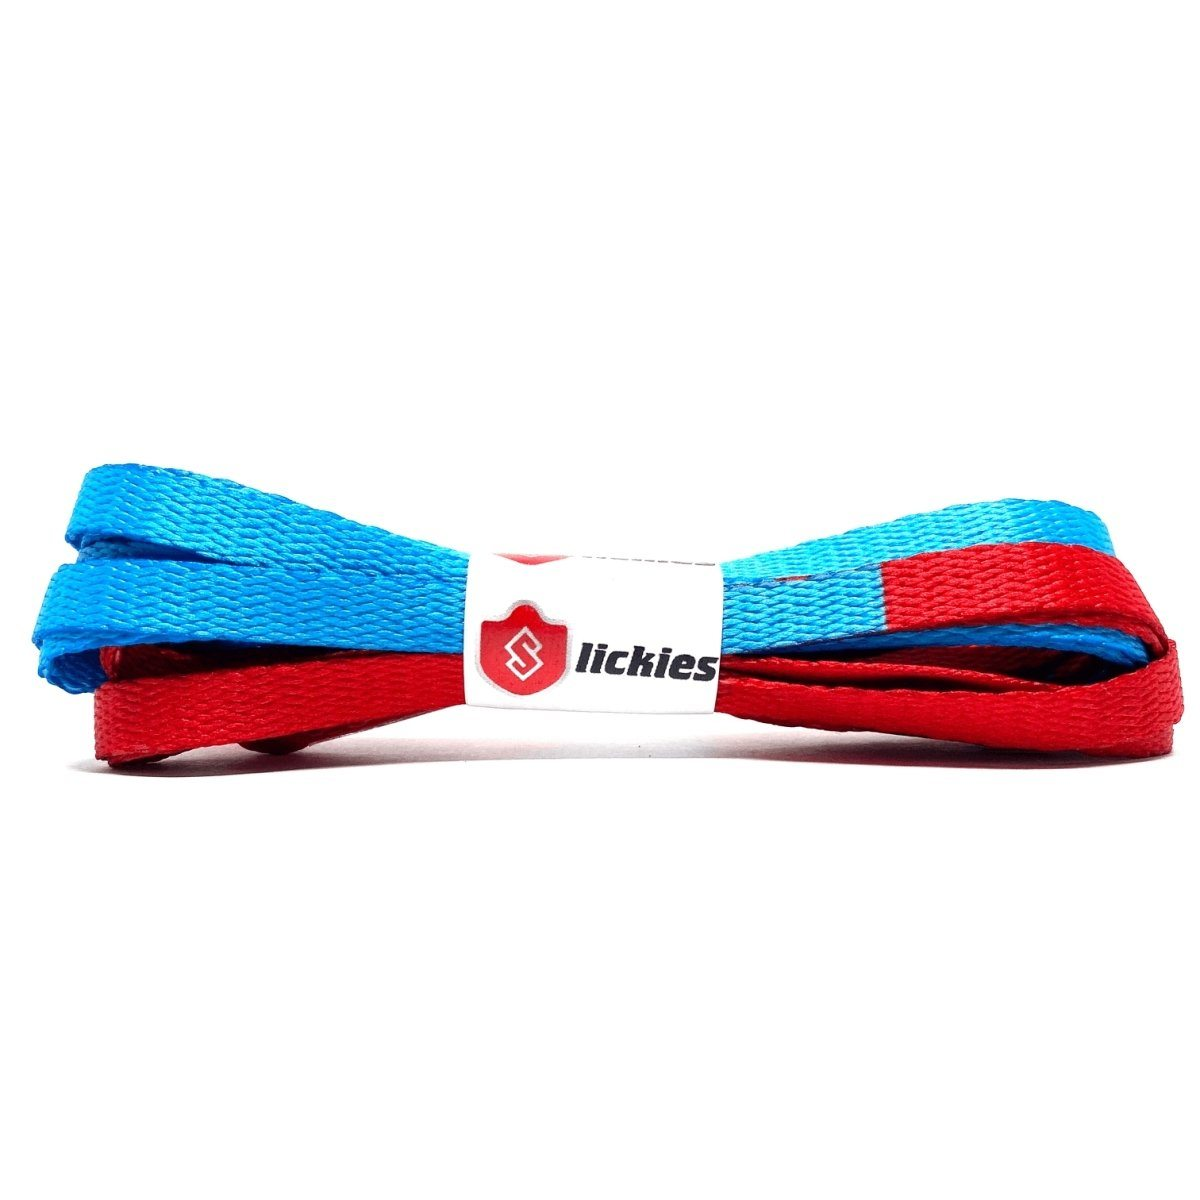 Basics 2Tone Jordan Flat Laces - AJ1 Fearless UNC Chicago Blue And Varsity Red